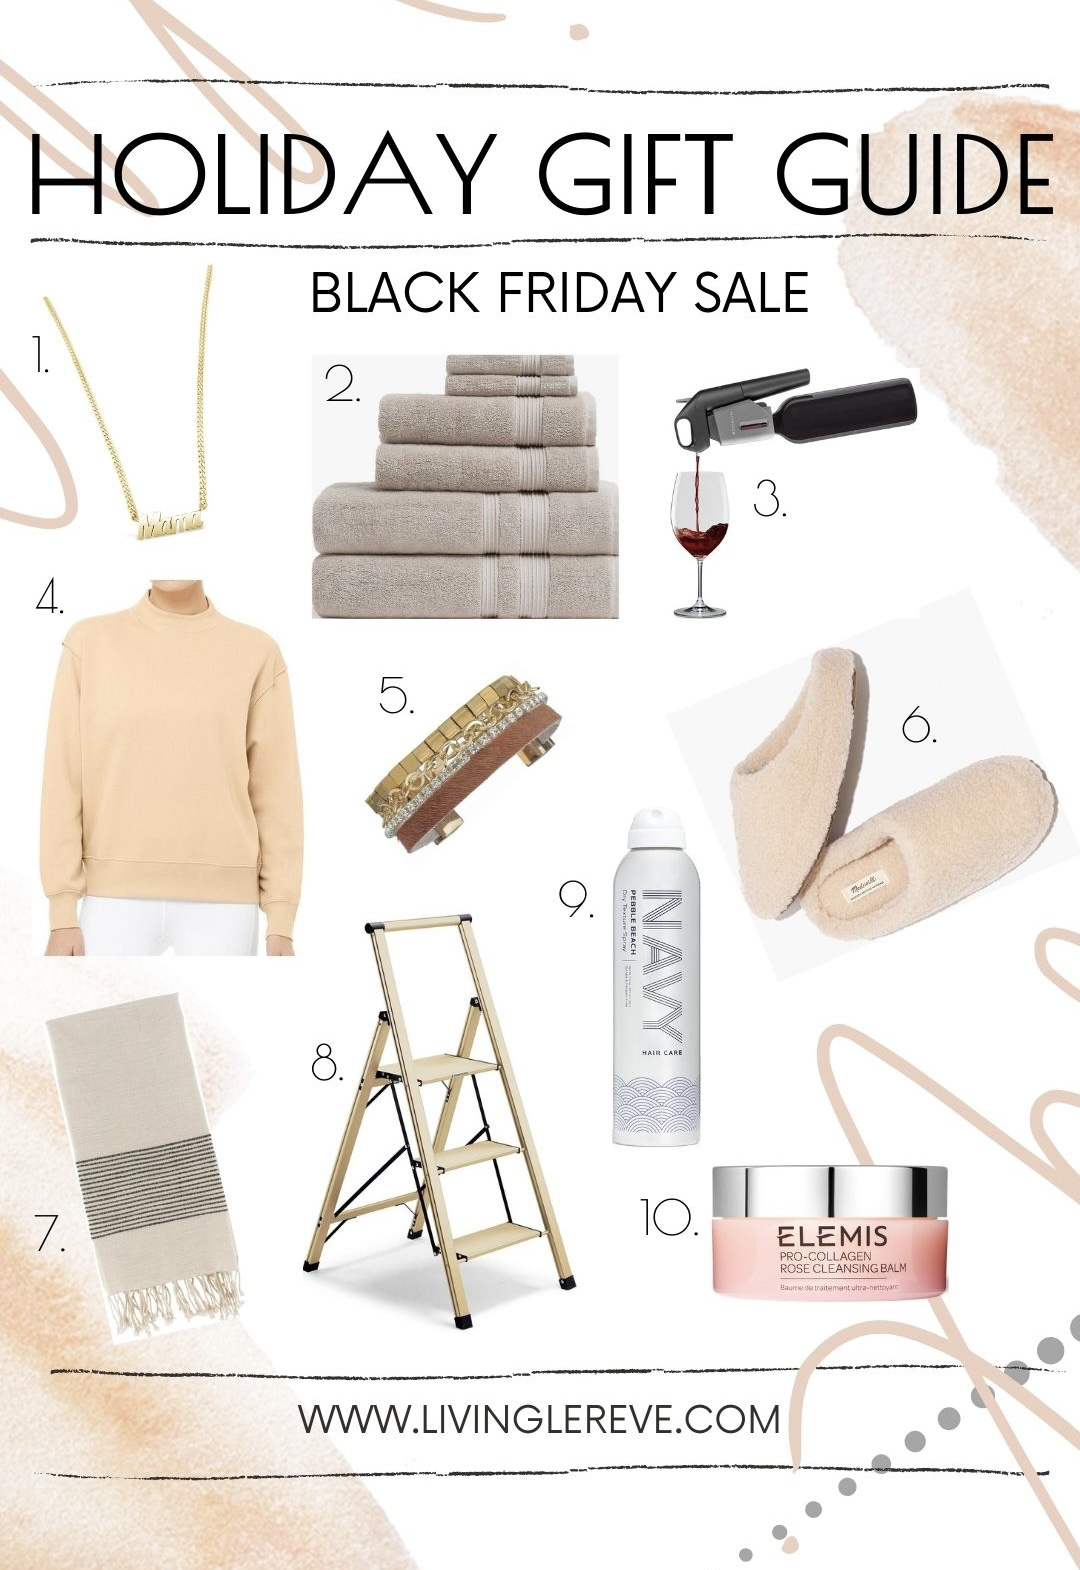 Black Friday holiday gift guide